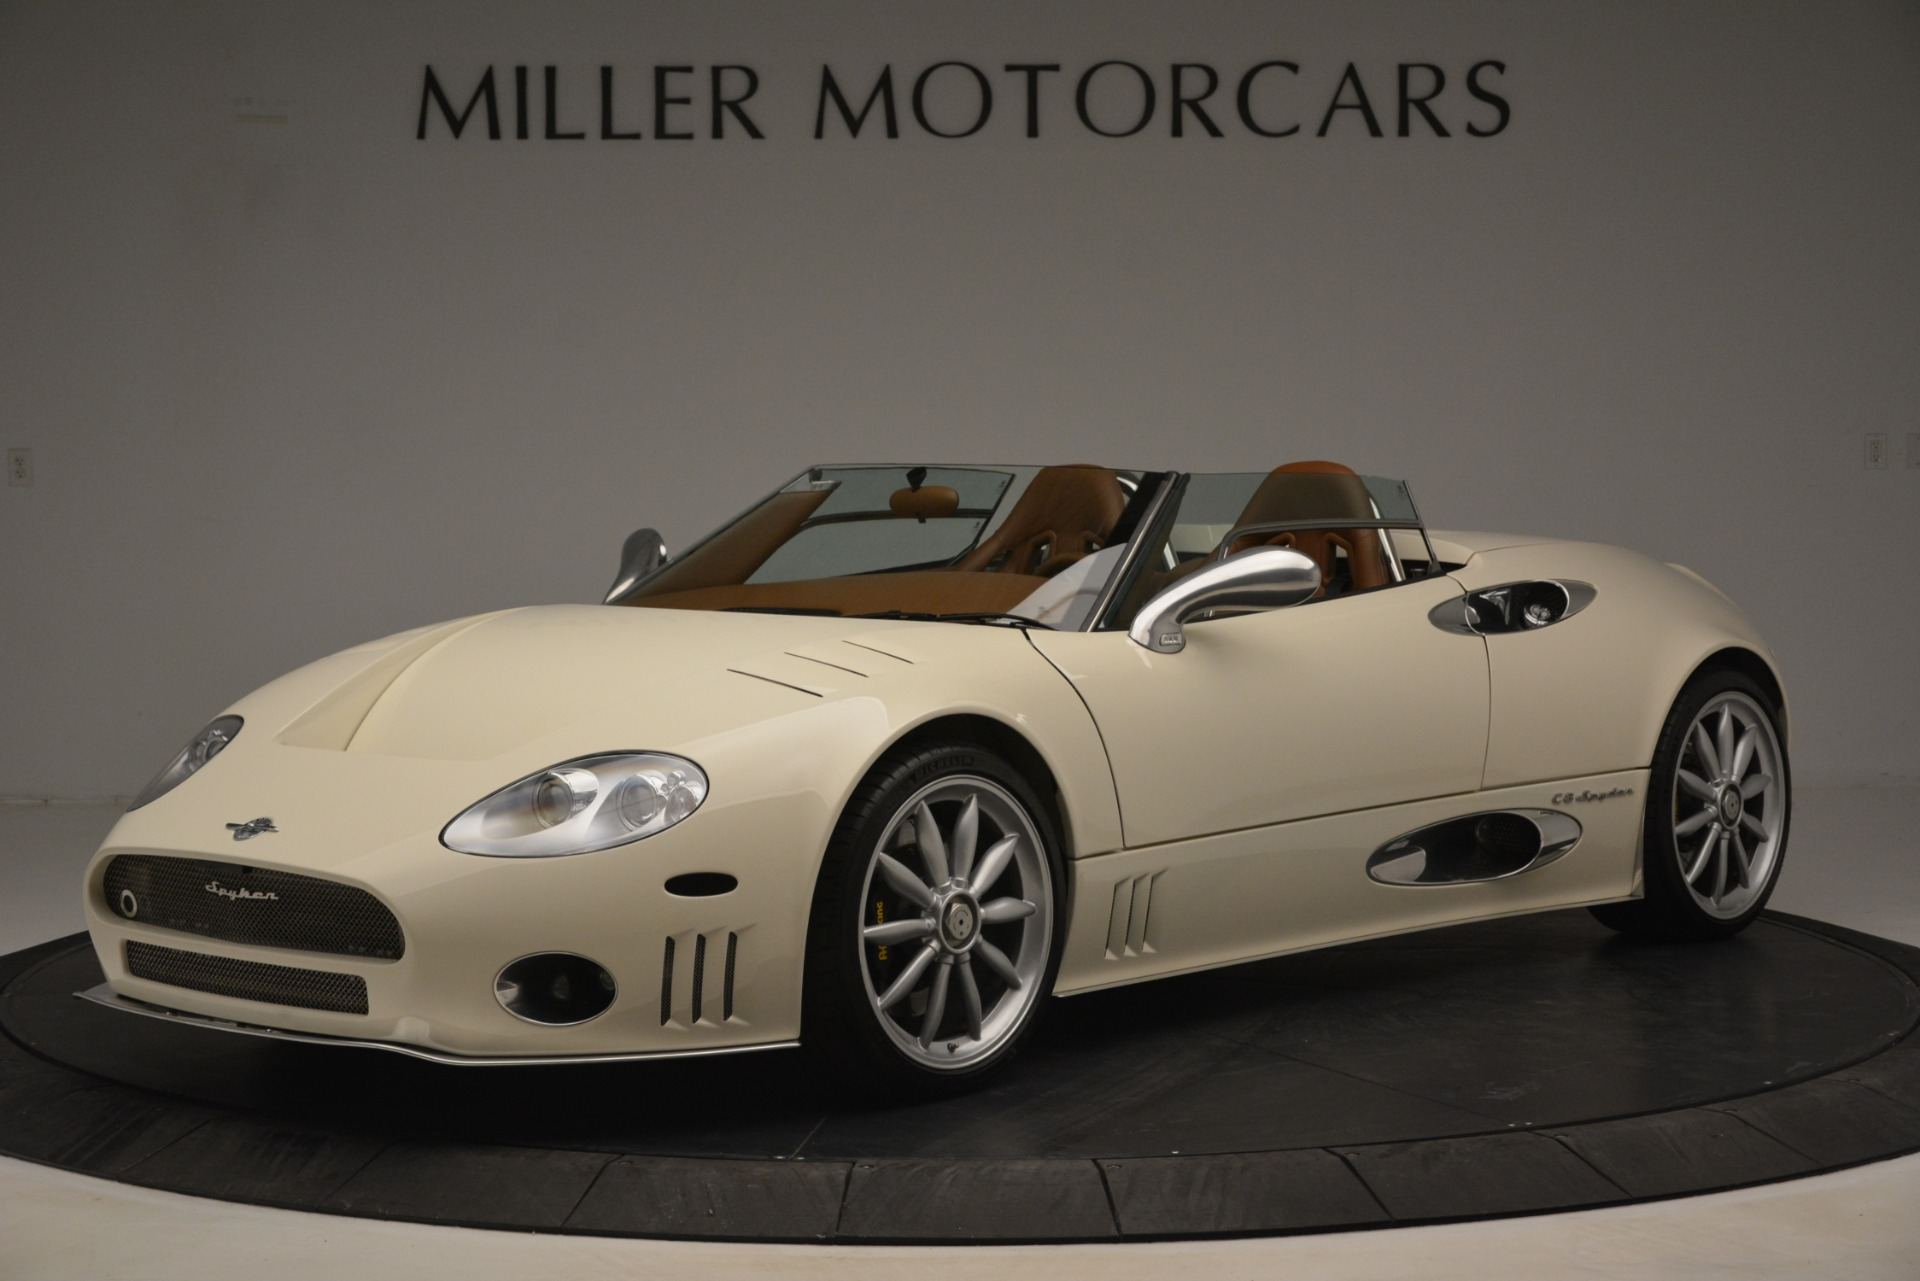 Used 2006 Spyker C8 Spyder  For Sale In Greenwich, CT. Alfa Romeo of Greenwich, 7463 1661_p2